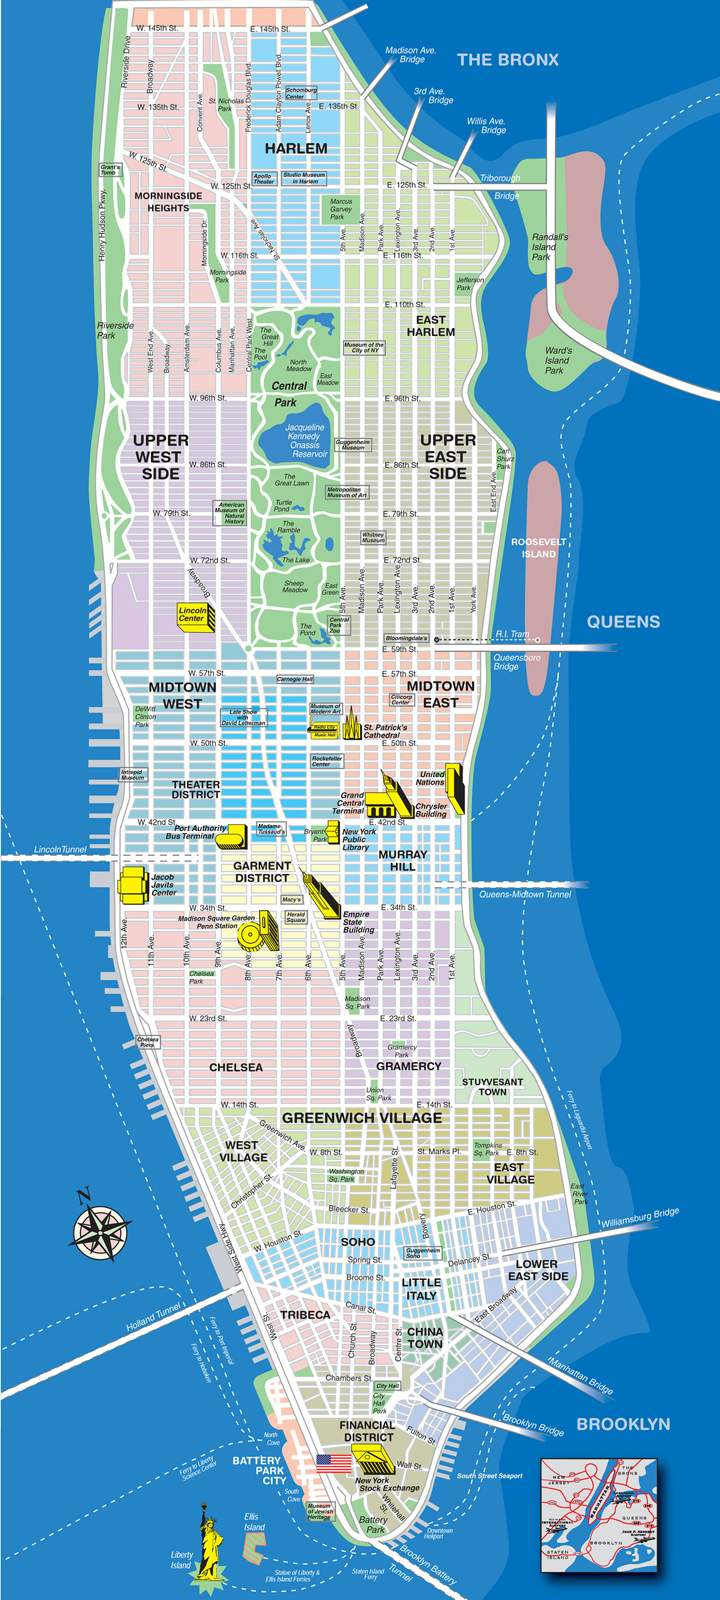 Large Manhattan Maps For Free Download And Print | High-Resolution - Map Of Midtown Manhattan Printable